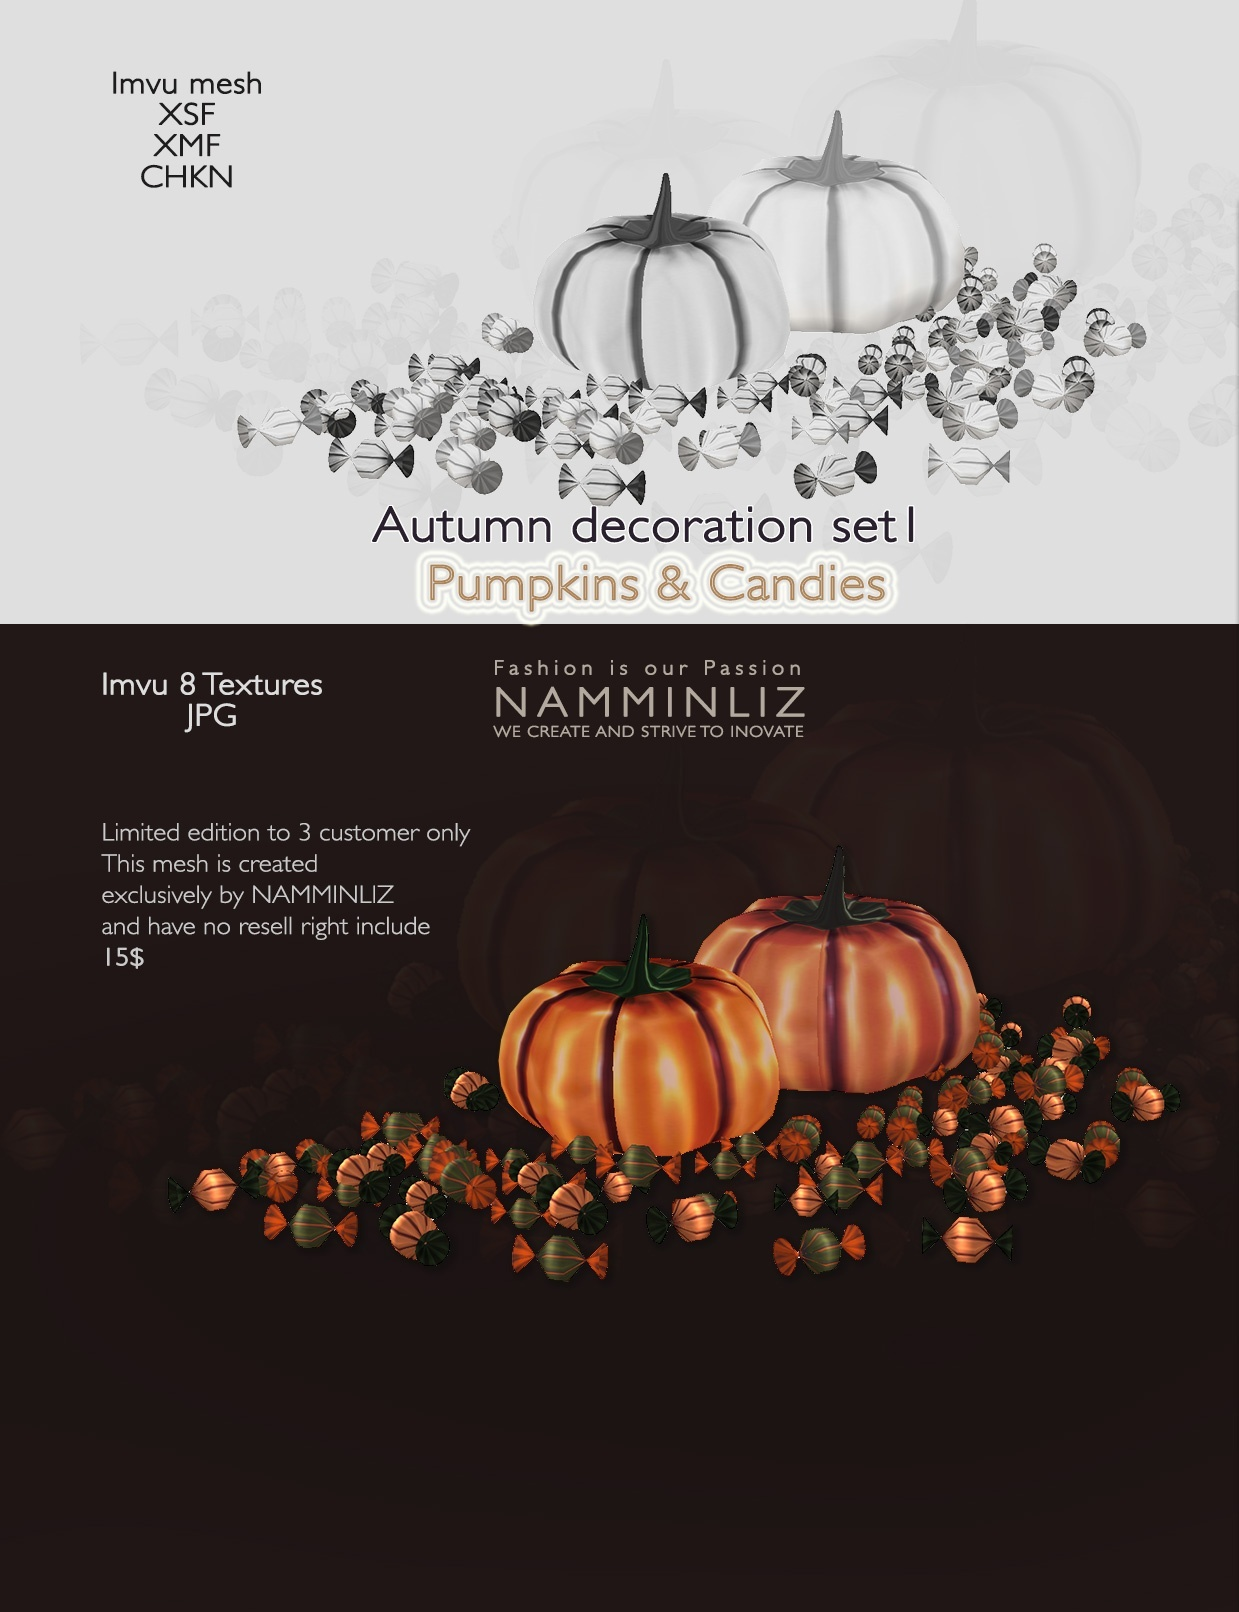 imvu 3D Mesh Autumn decor Set1 ( SXF, XMF, CHKN, JPG, Easy Guide) 0/3